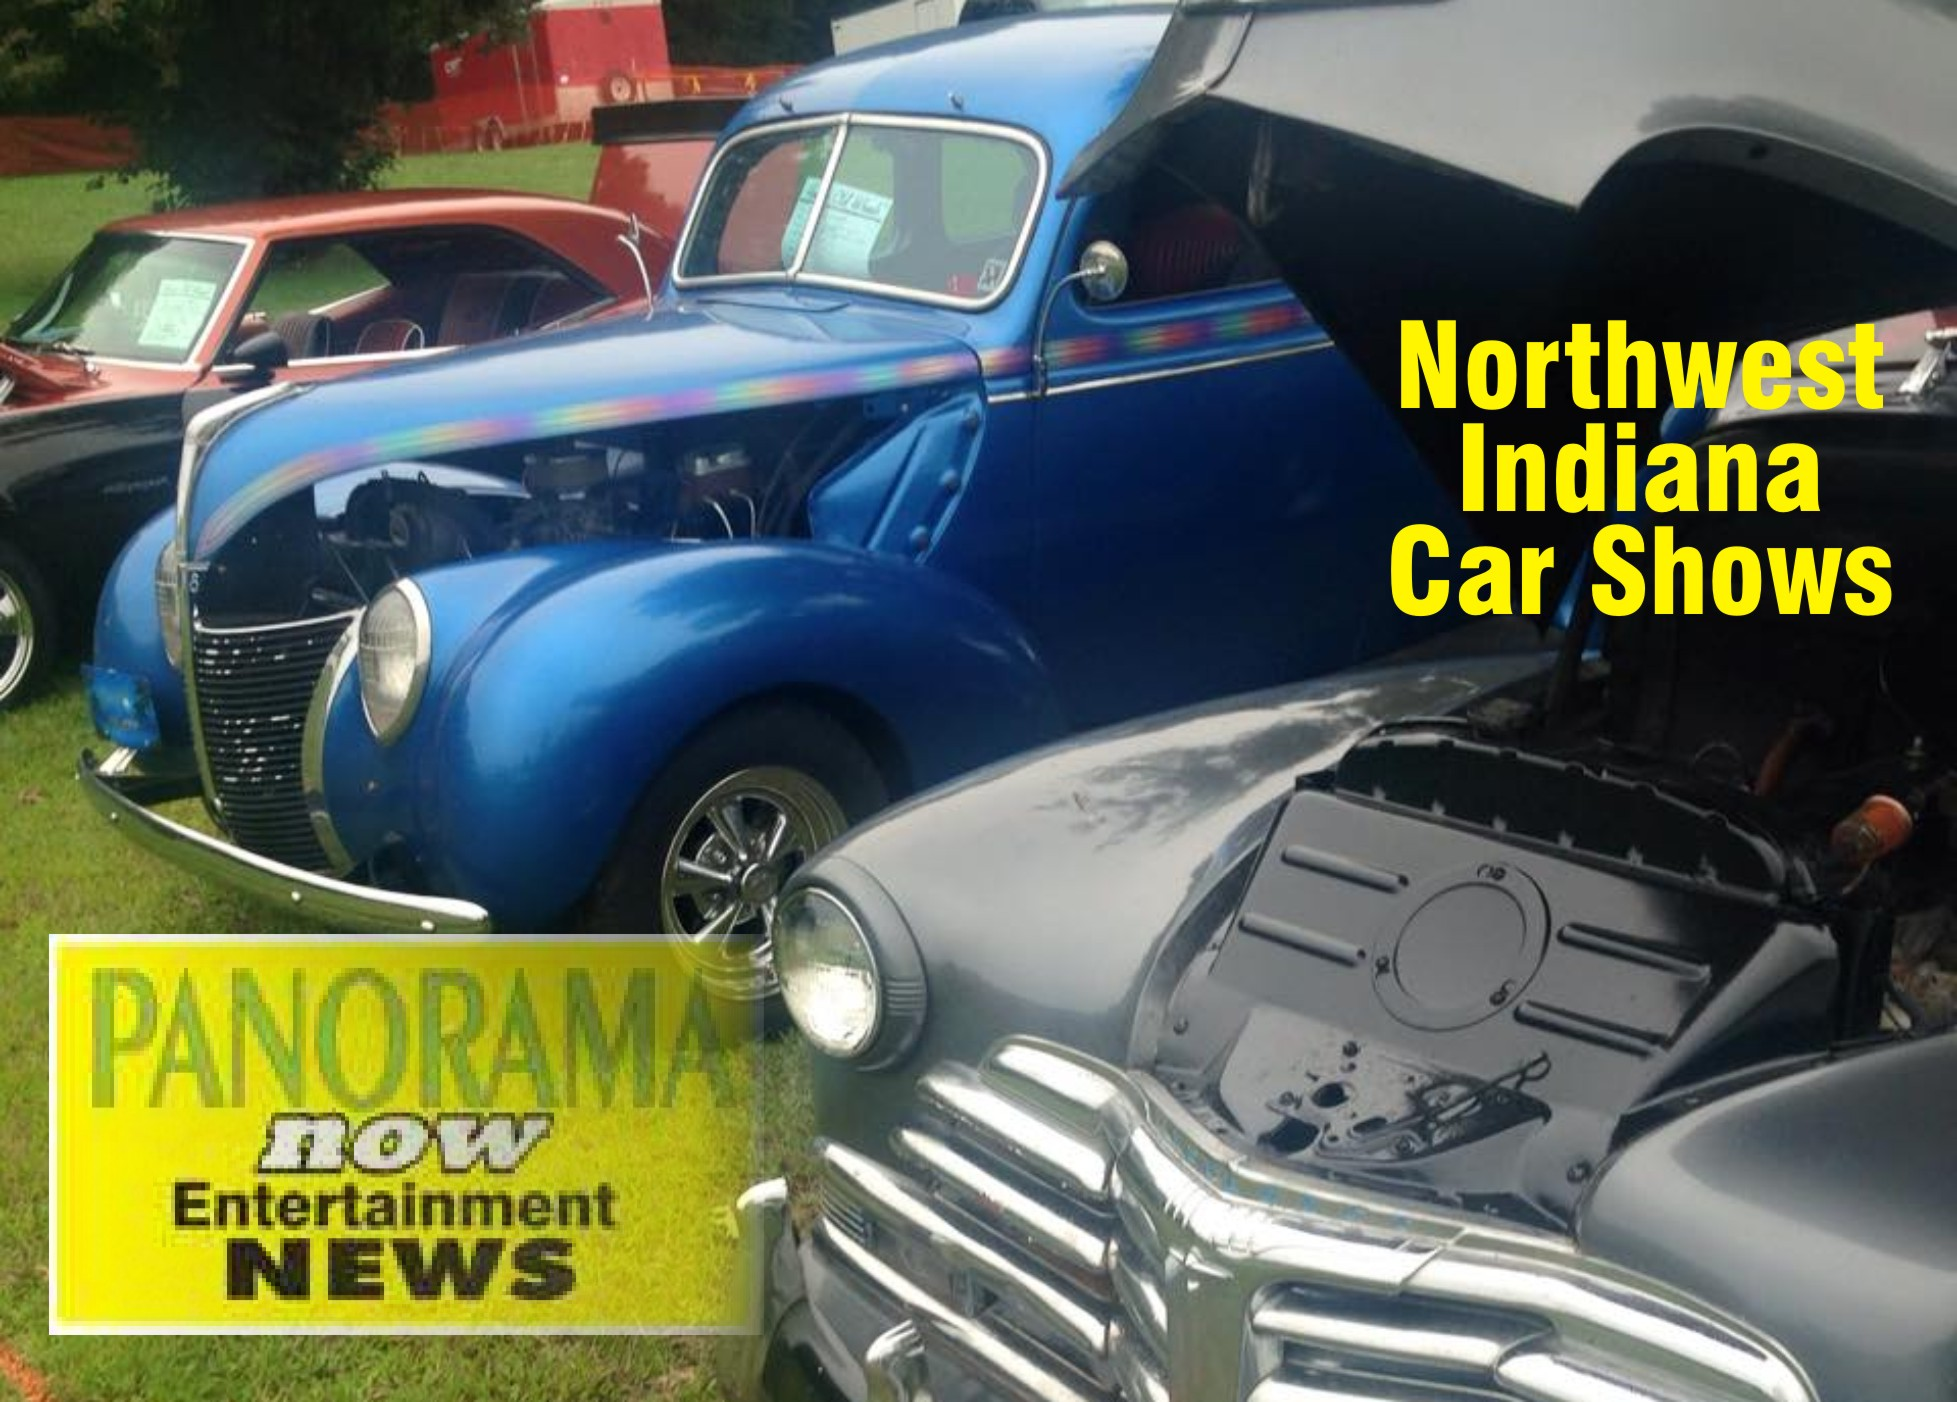 Northwest Indiana Car Shows - Upcoming car shows